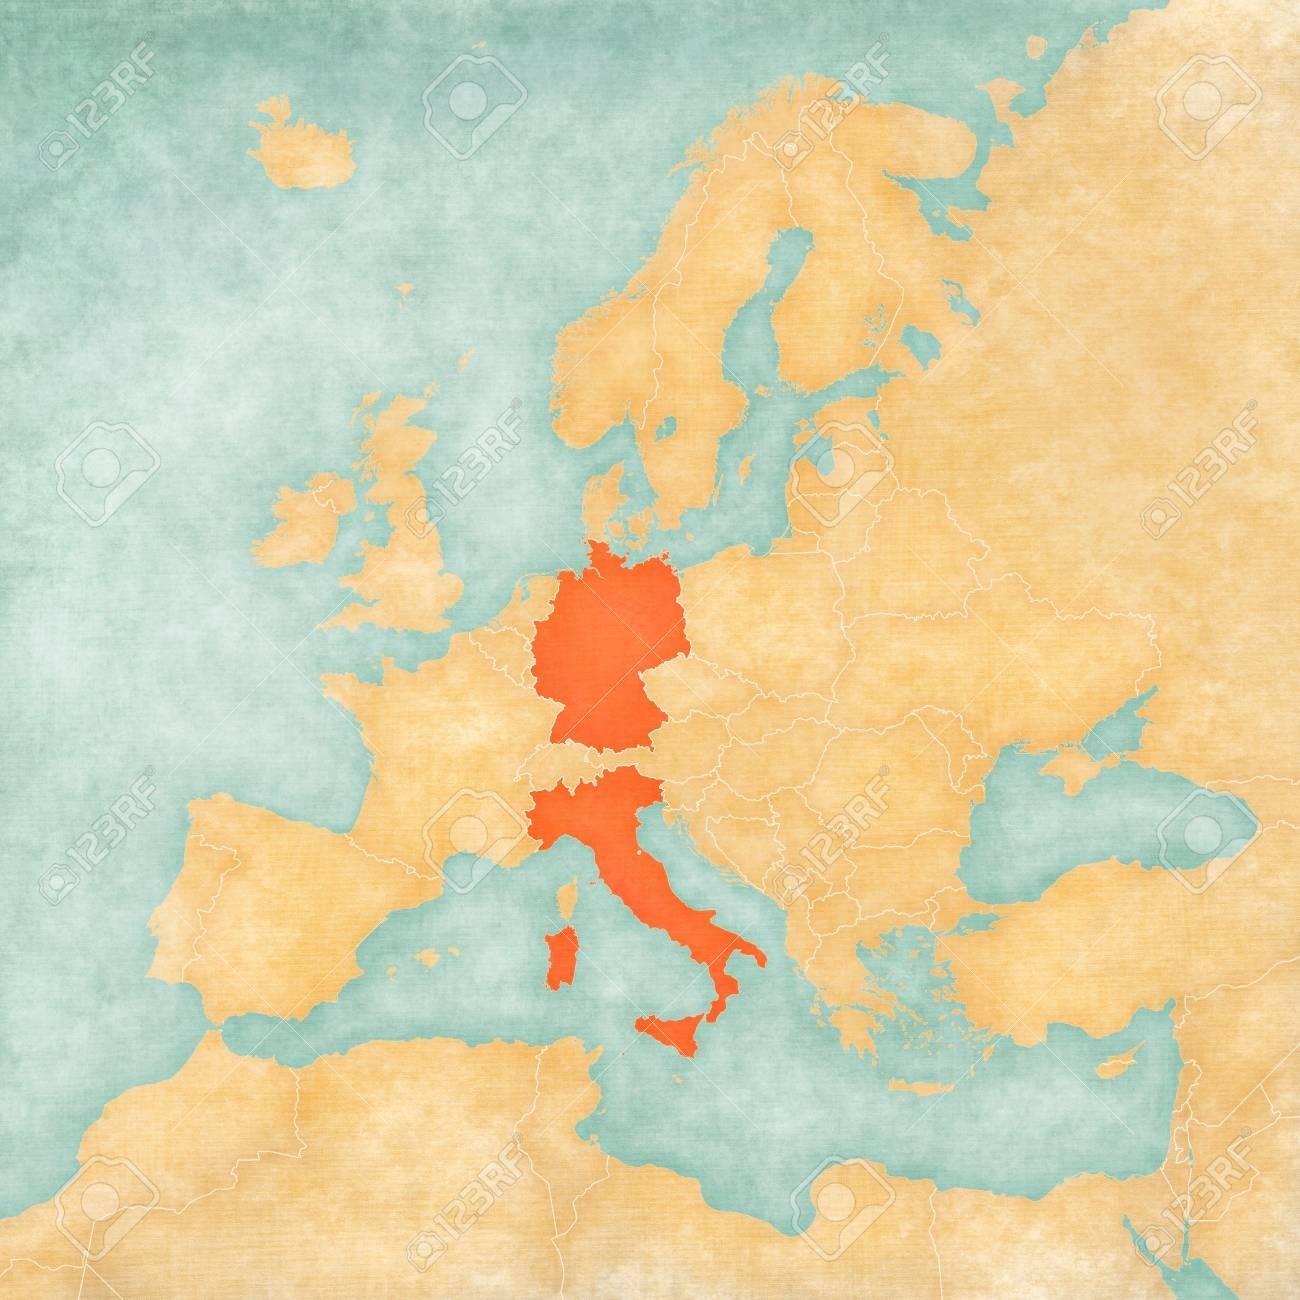 Germany And Italy On The Map Of Europe In Soft Grunge And Vintage.. pertaining to Germany And Italy In World Map